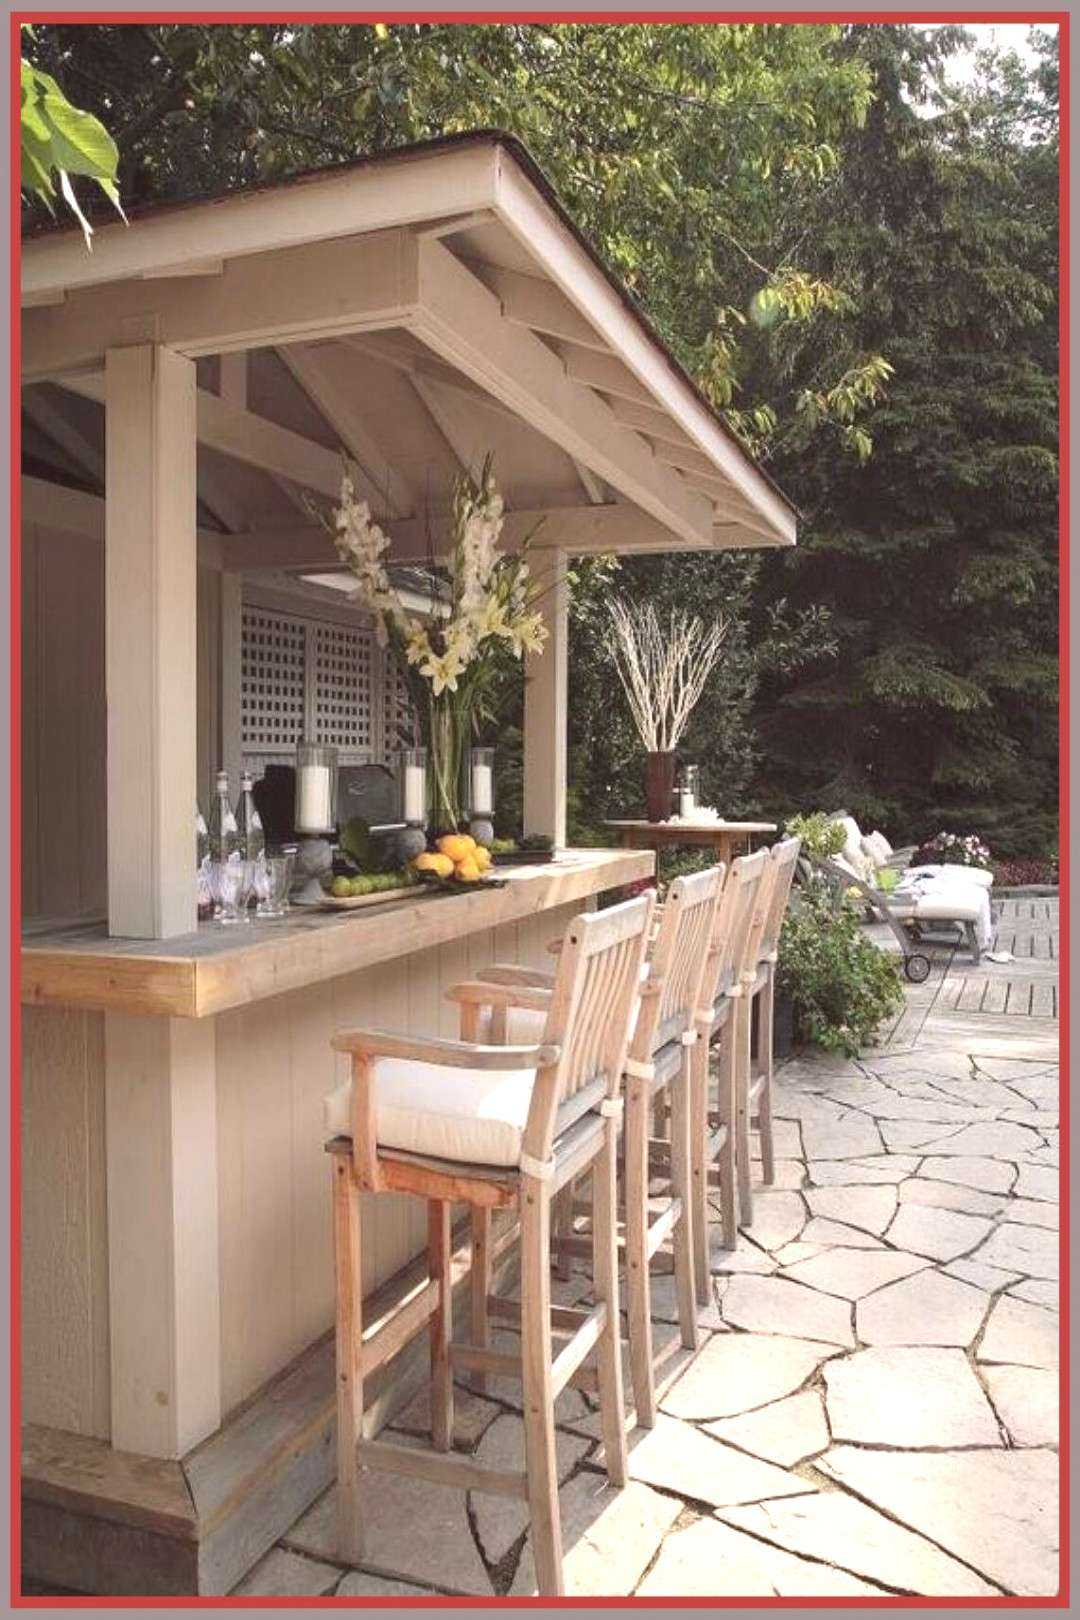 91 reference of outdoor patio bar restaurants near me outdoor patio bar restaurants near me-#outdoo